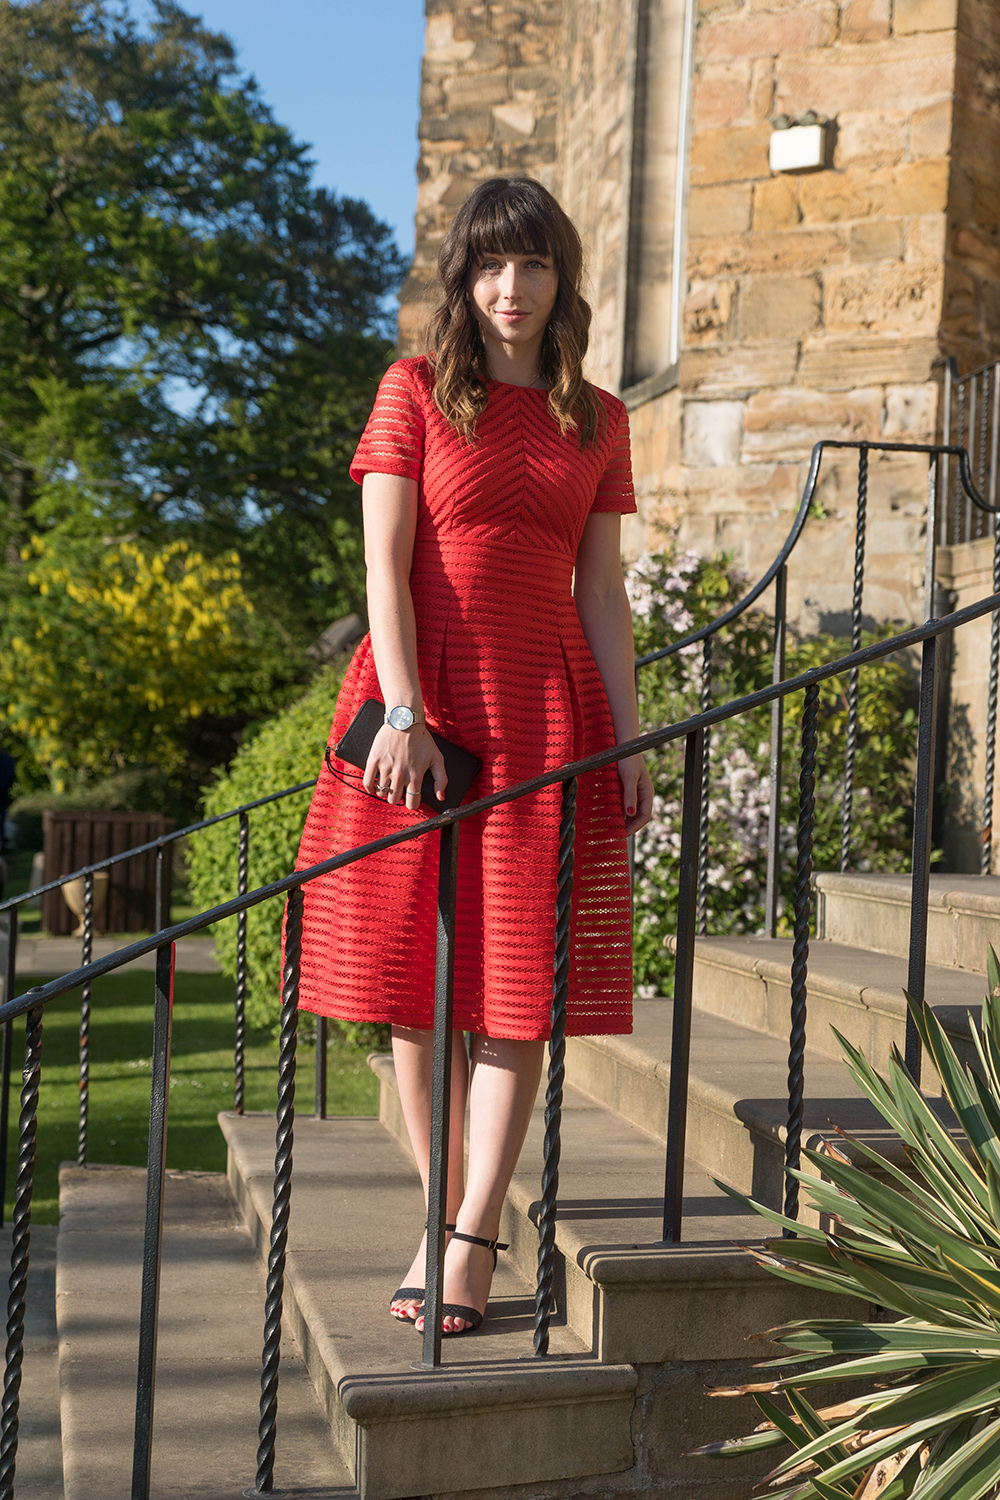 Hello Freckles Summer Occasion Wear Boohoo Red Dress Lumley Castle Personal Style